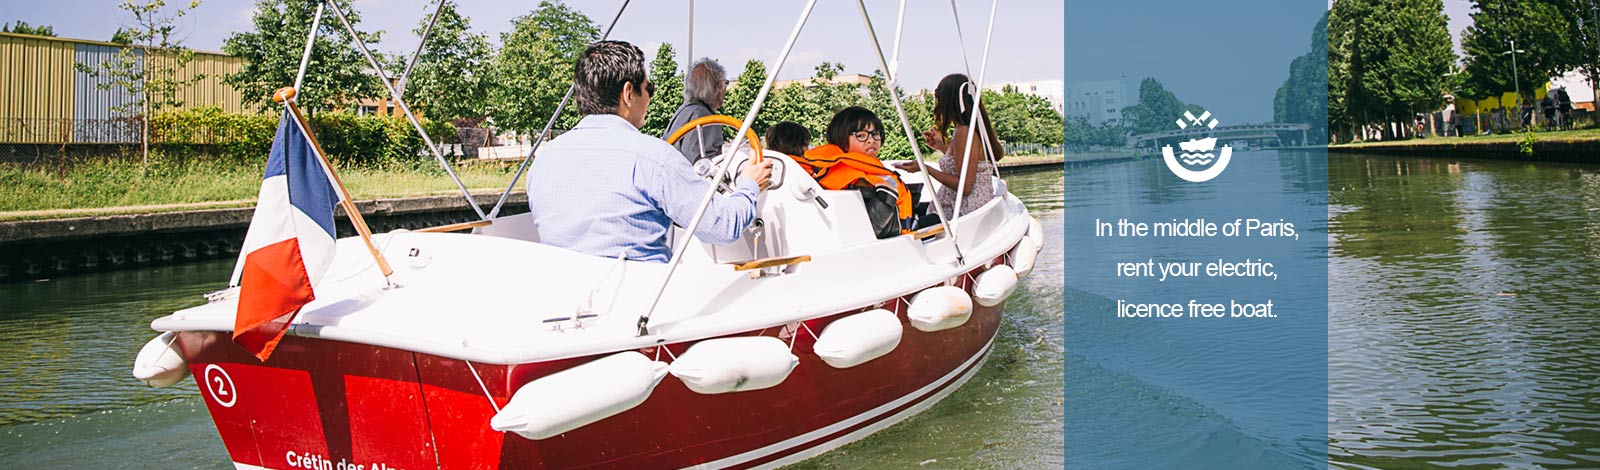 Family sailing on electric, licence free boat